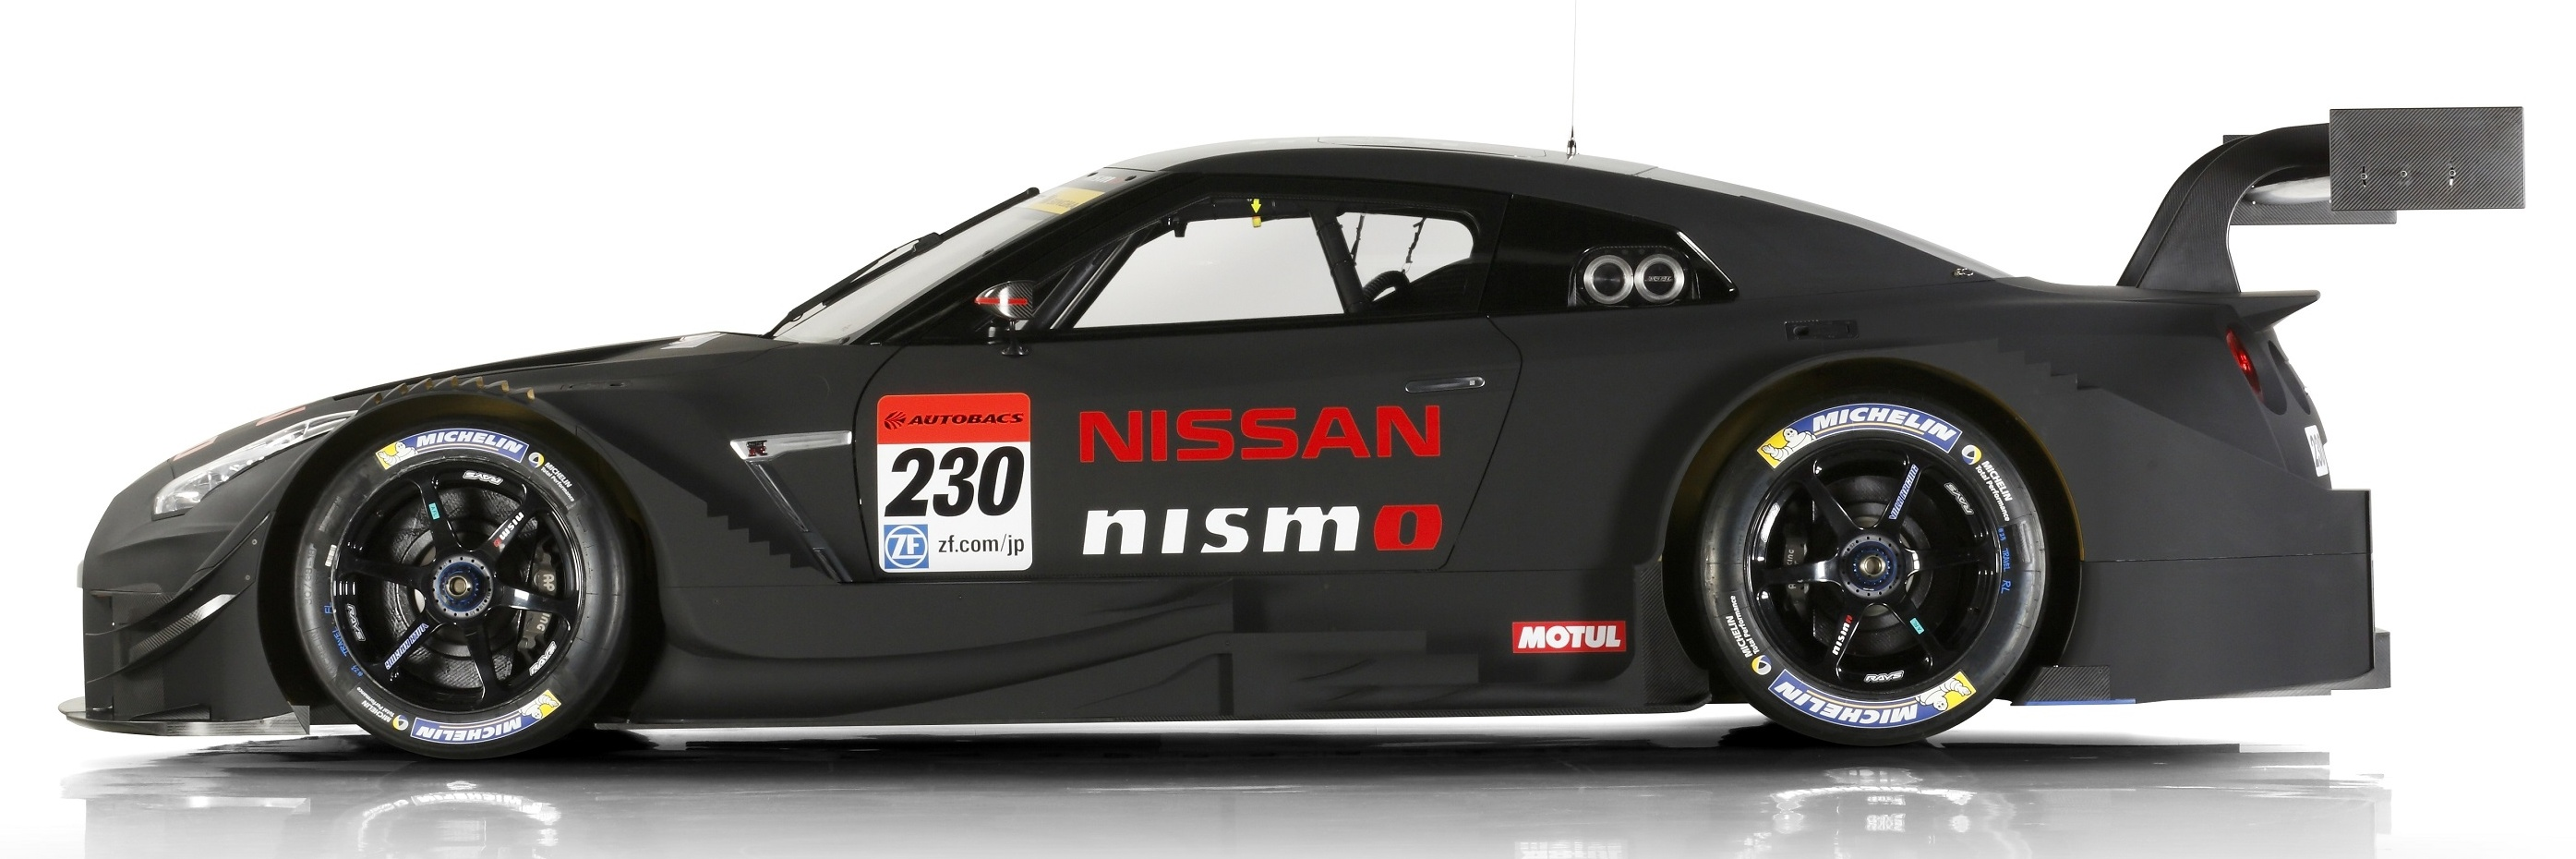 Nissan 2018 >> 2017 Nissan GT-R Nismo GT500 revealed for Super GT Paul Tan - Image 581730